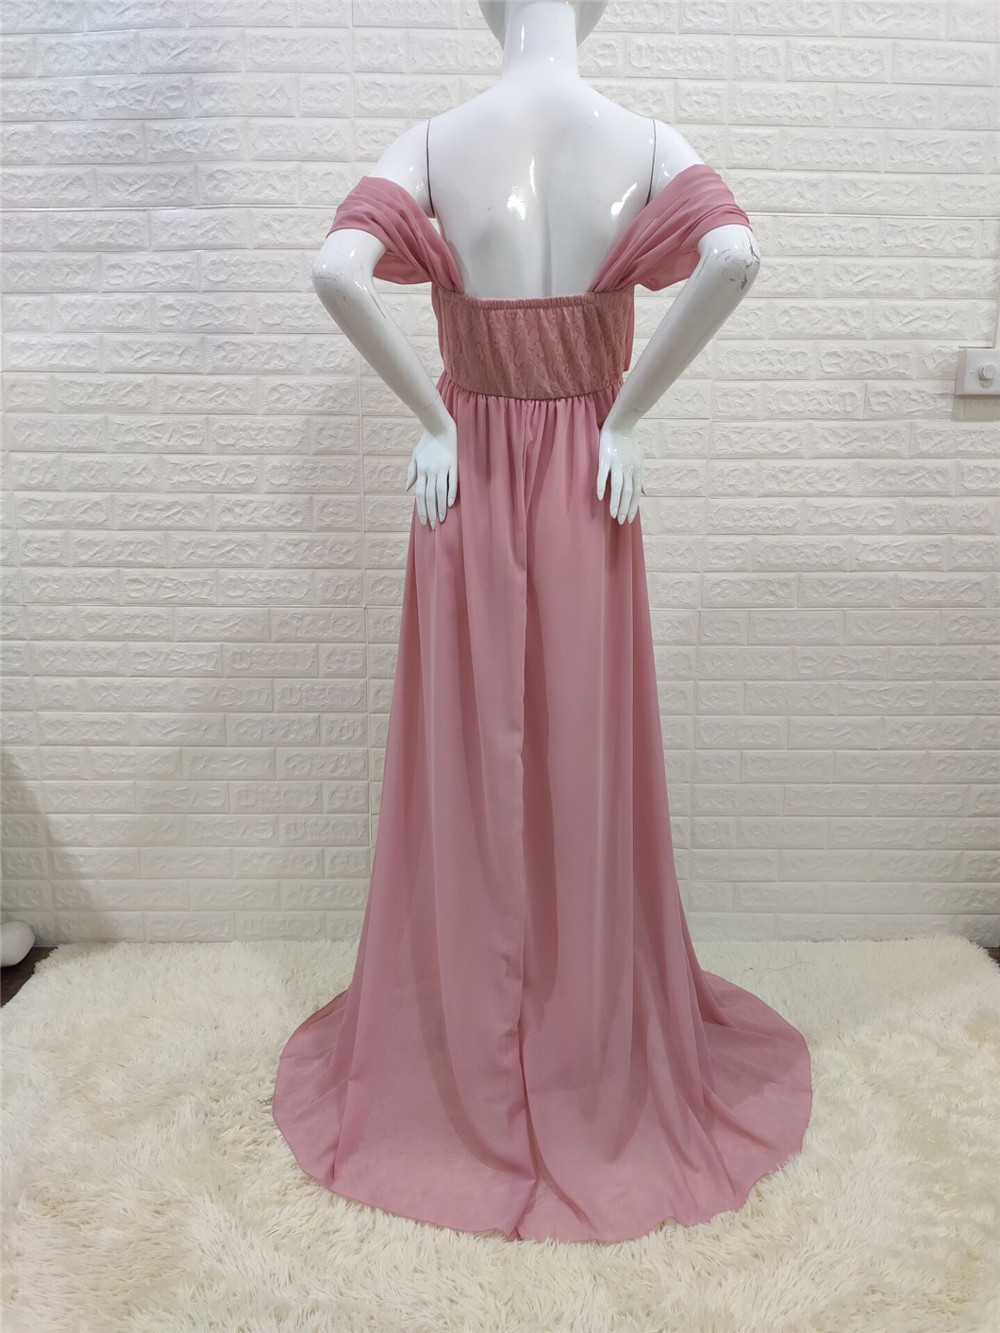 Shoulderless Sexy Maternity Dress Photo Shoot Long Pregnancy Dresses Photography Props Lace Chiffon Maxi Gown For Pregnant Women (22)